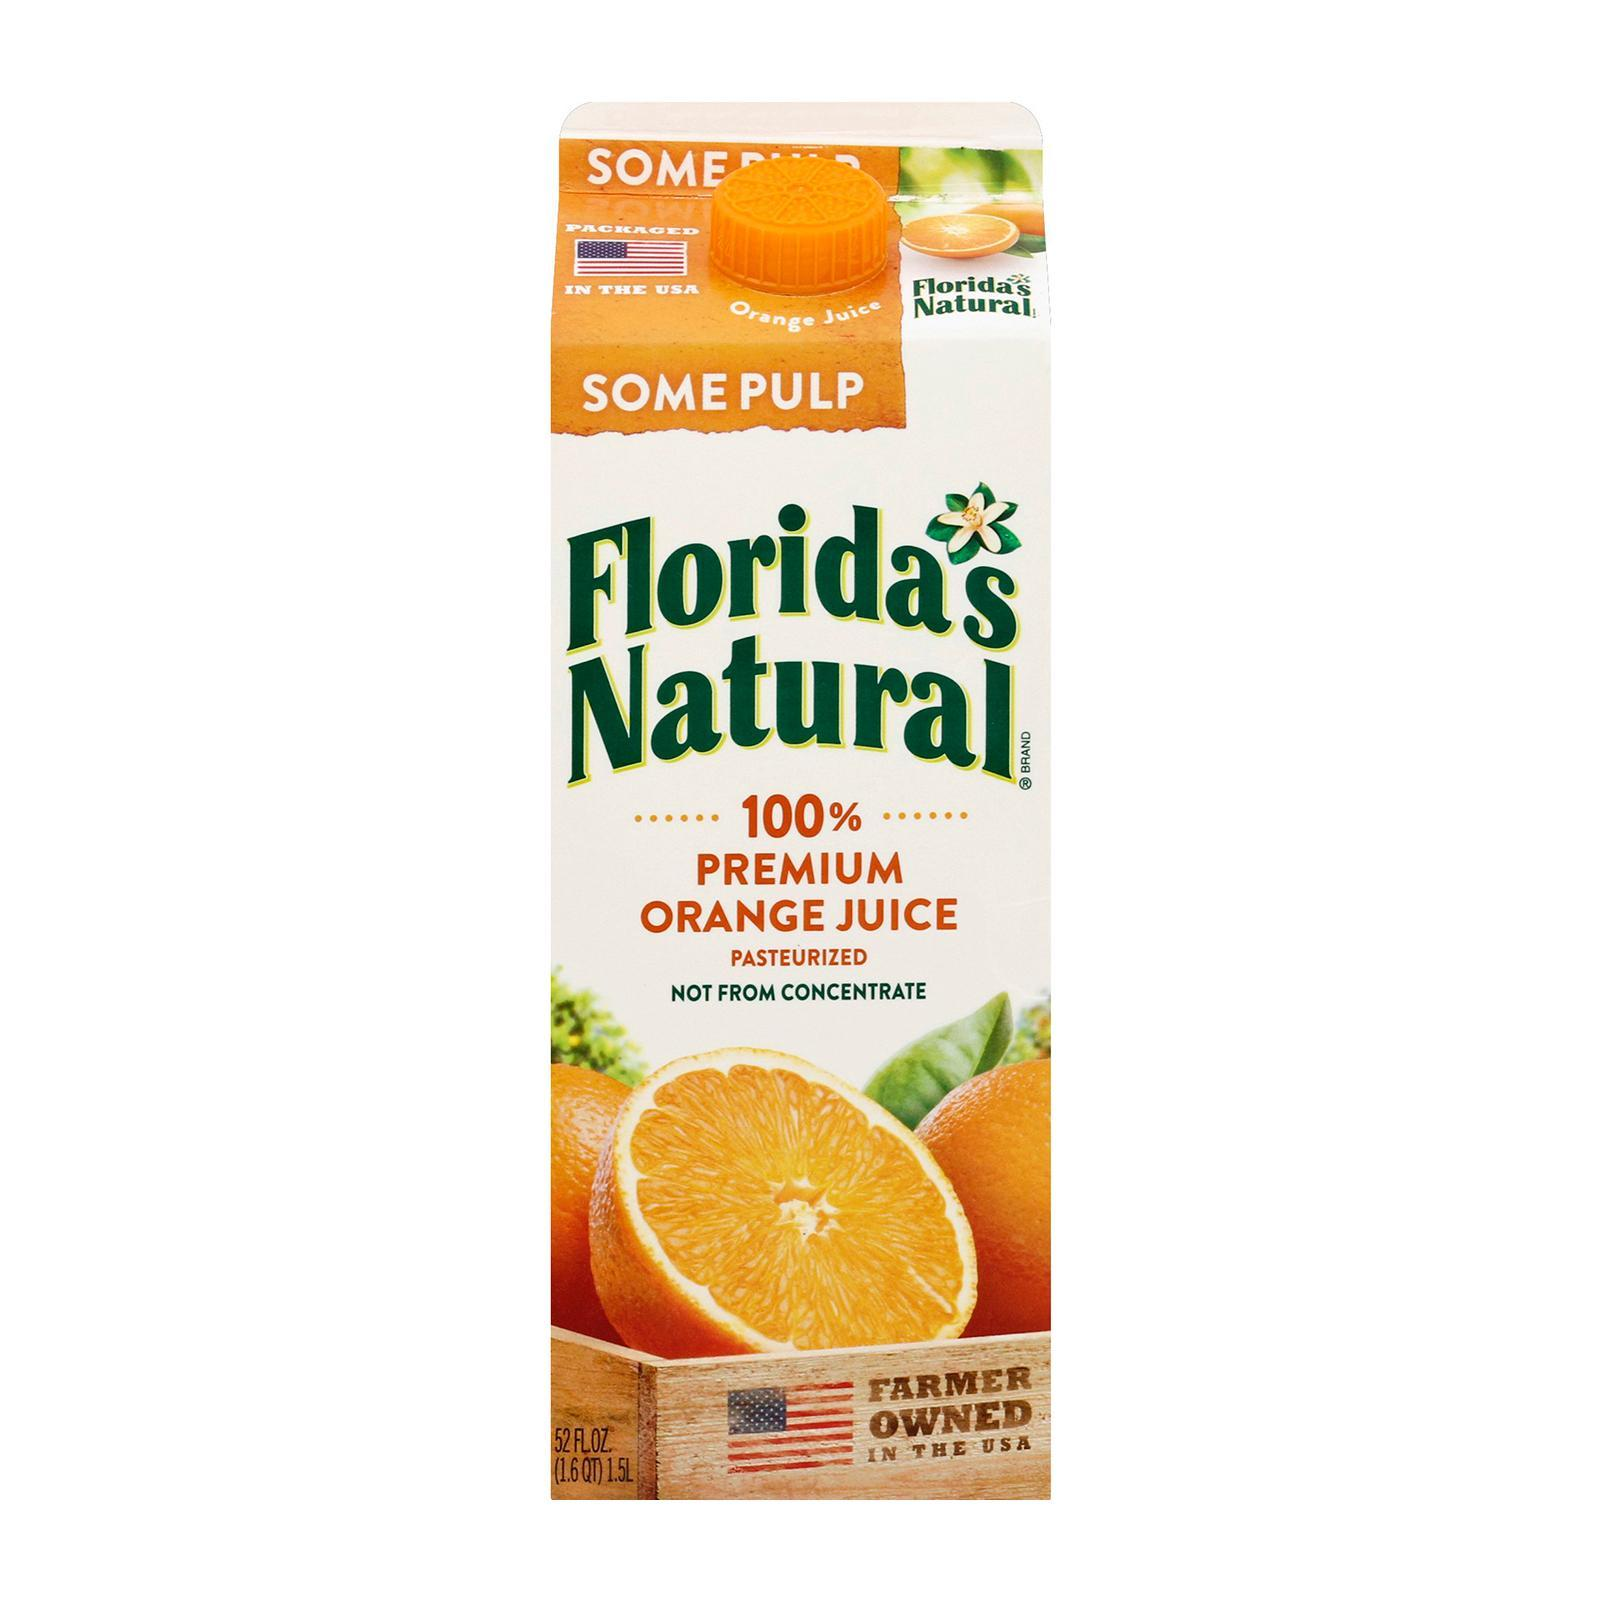 Florida's Natural NFC Home Squeezed (Some Pulp) Orange Juice